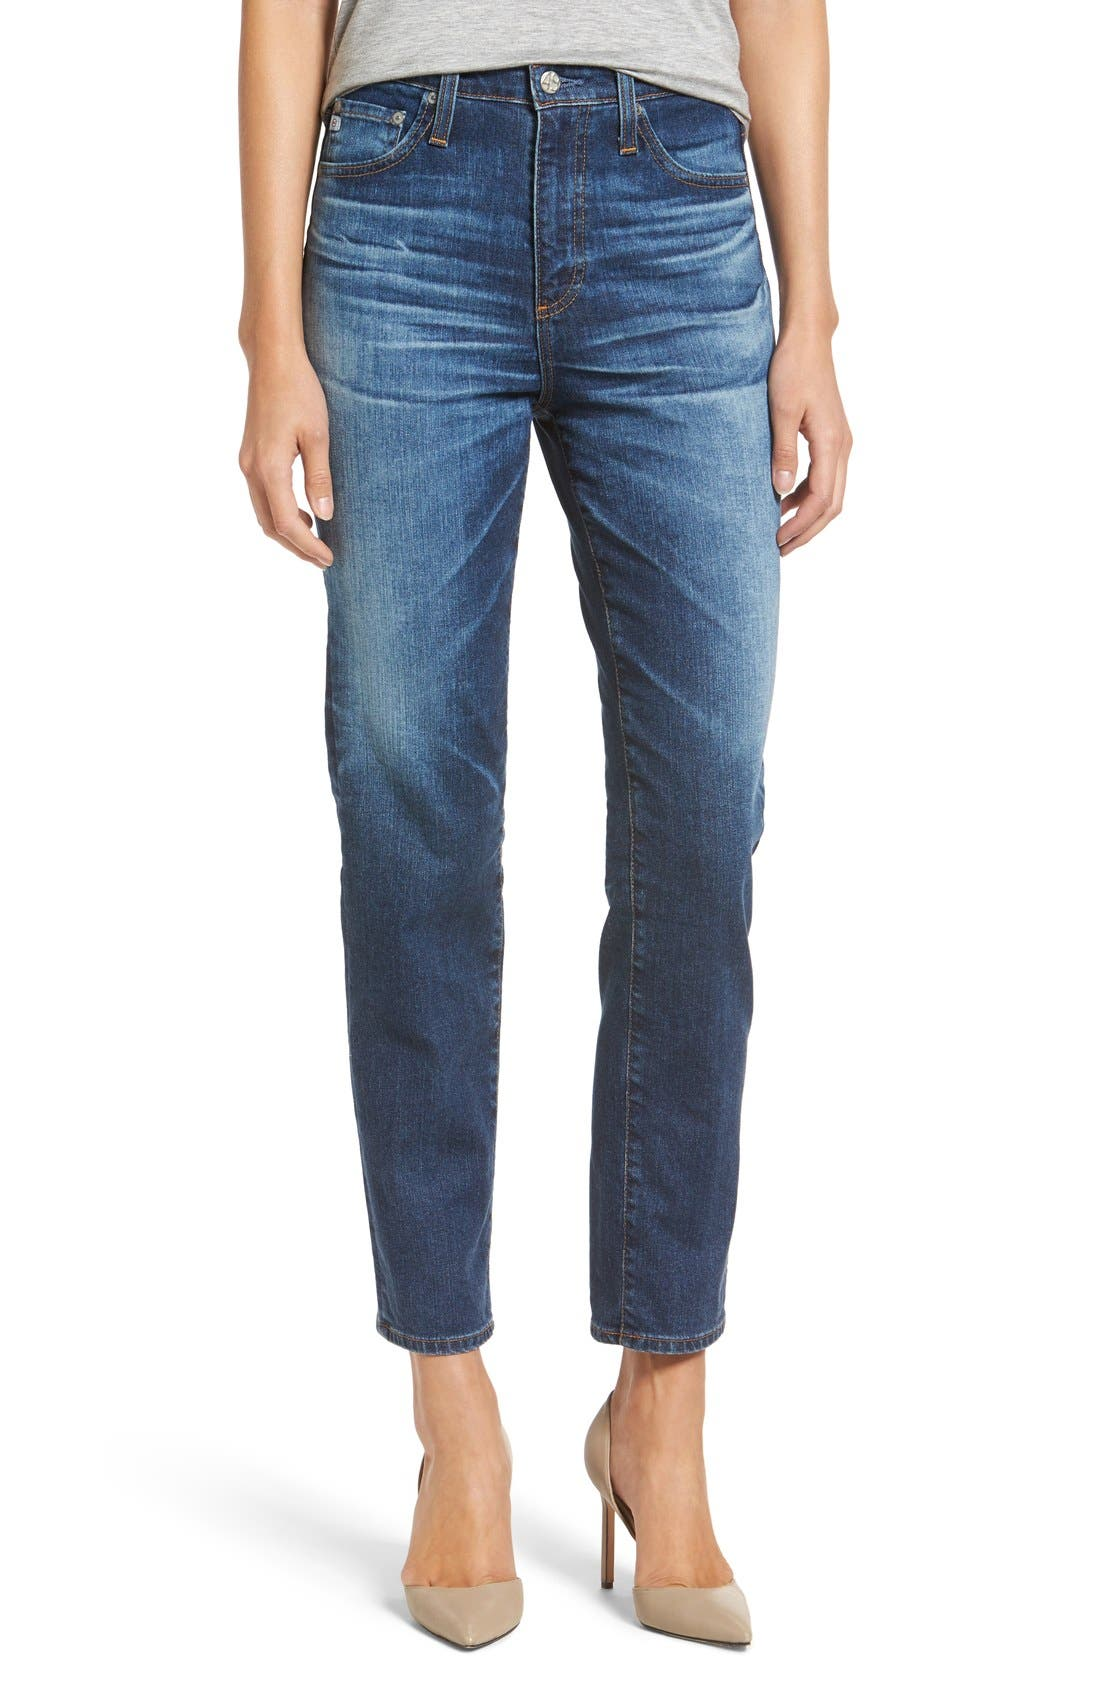 'The Phoebe' Vintage High Rise Straight Leg Jeans,                             Main thumbnail 1, color,                             10Y Wick